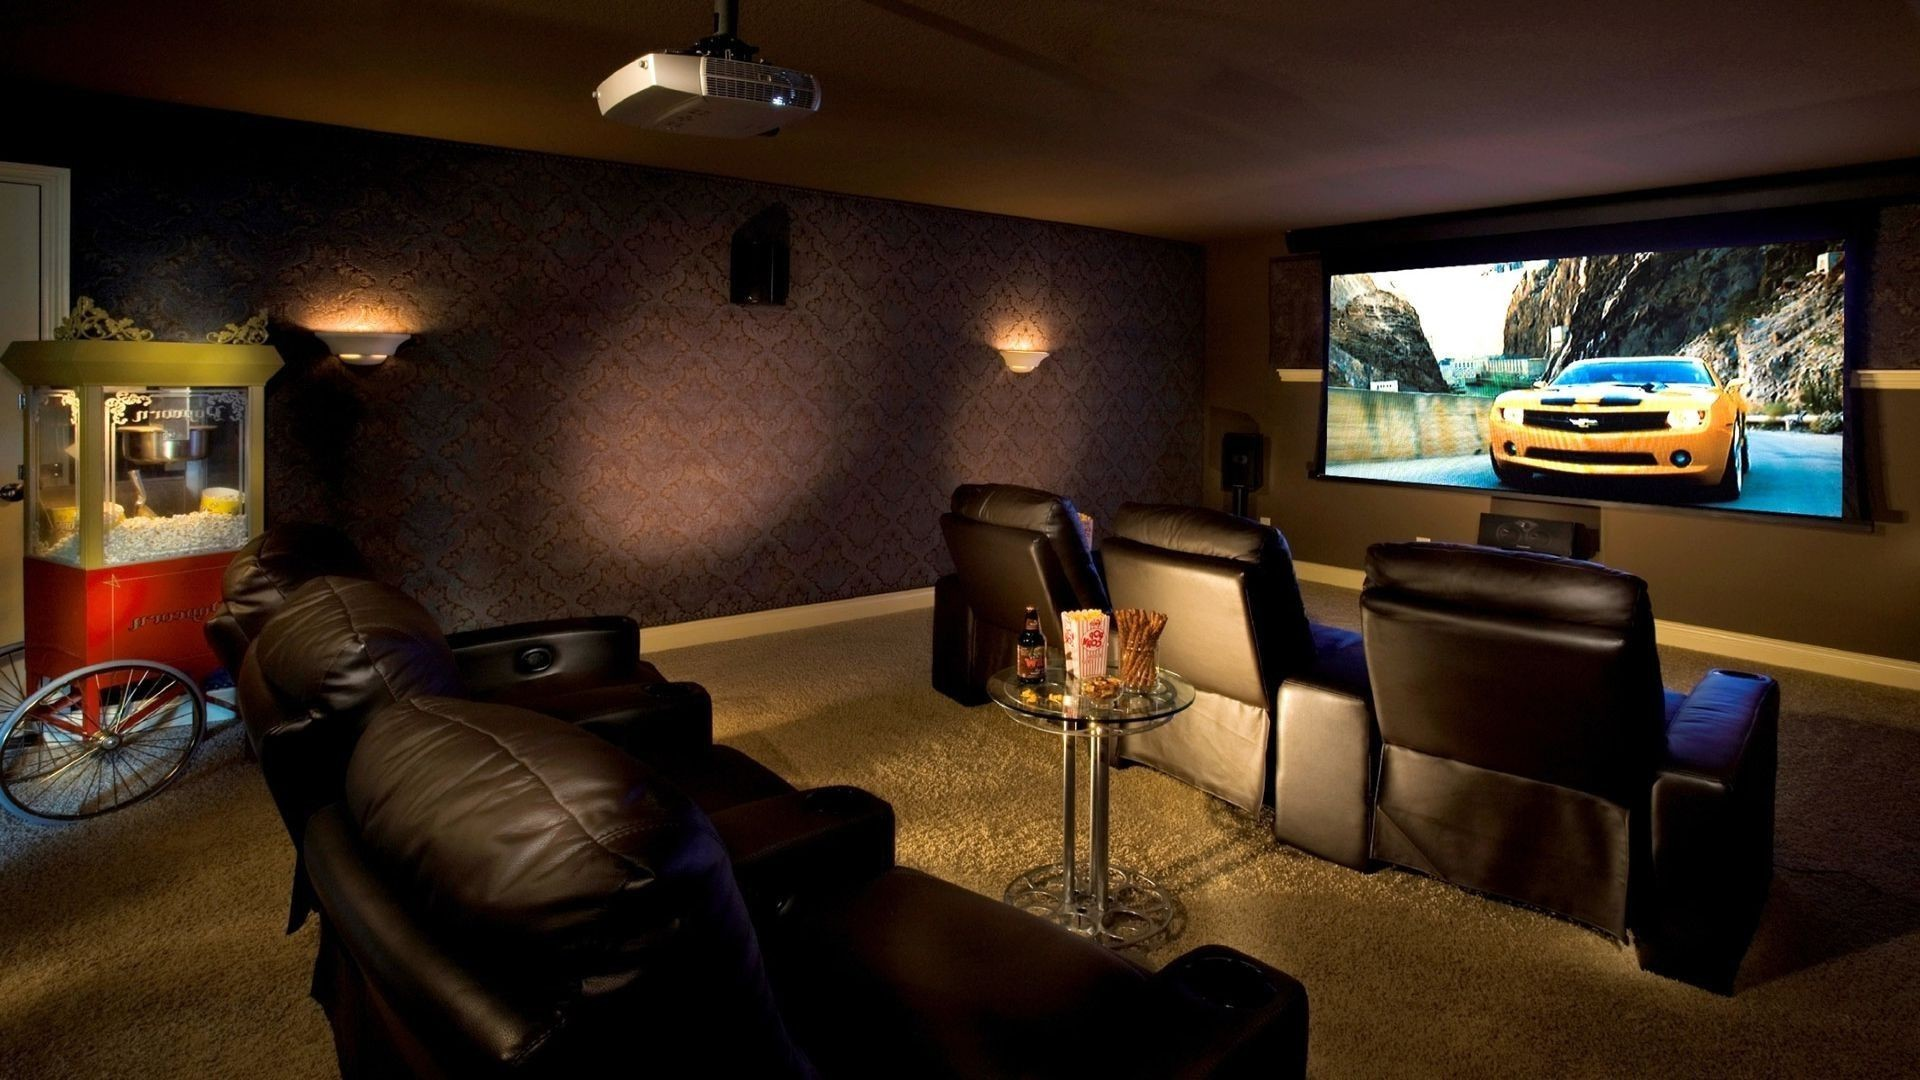 Res: 1920x1080, Download Wallpaper Interior, Home, Cinema, Sofas, Cushions, Tables